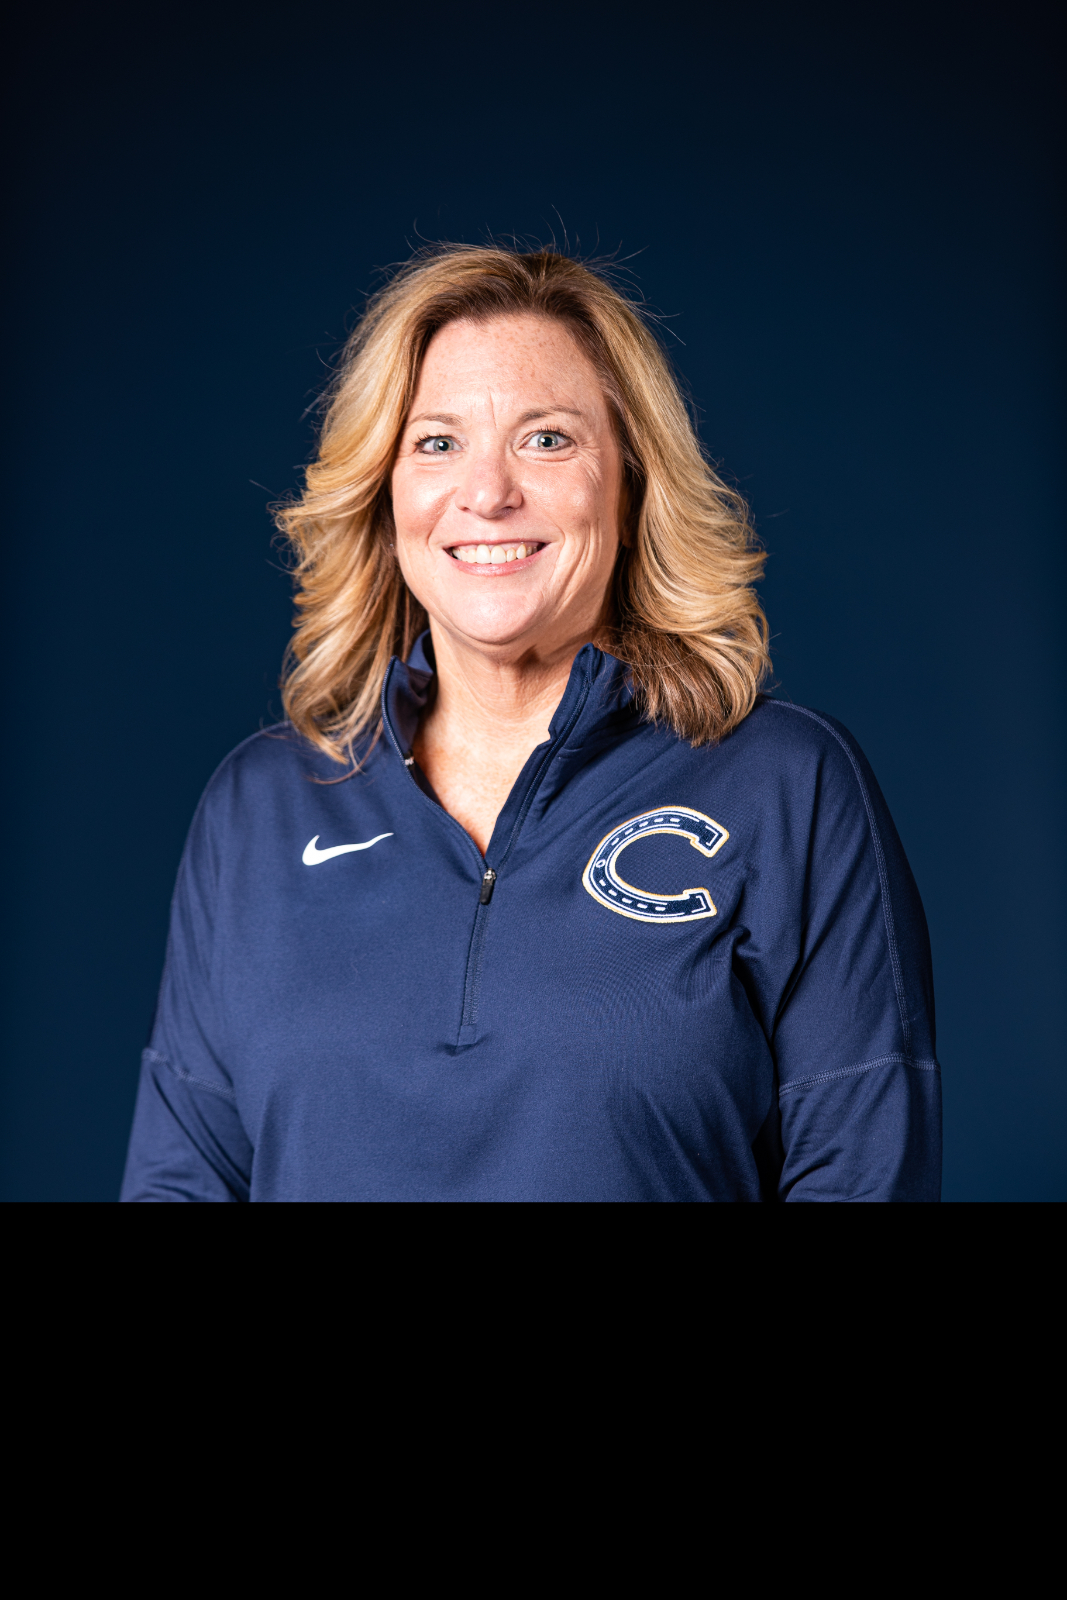 The Woman Behind All of the Athletics